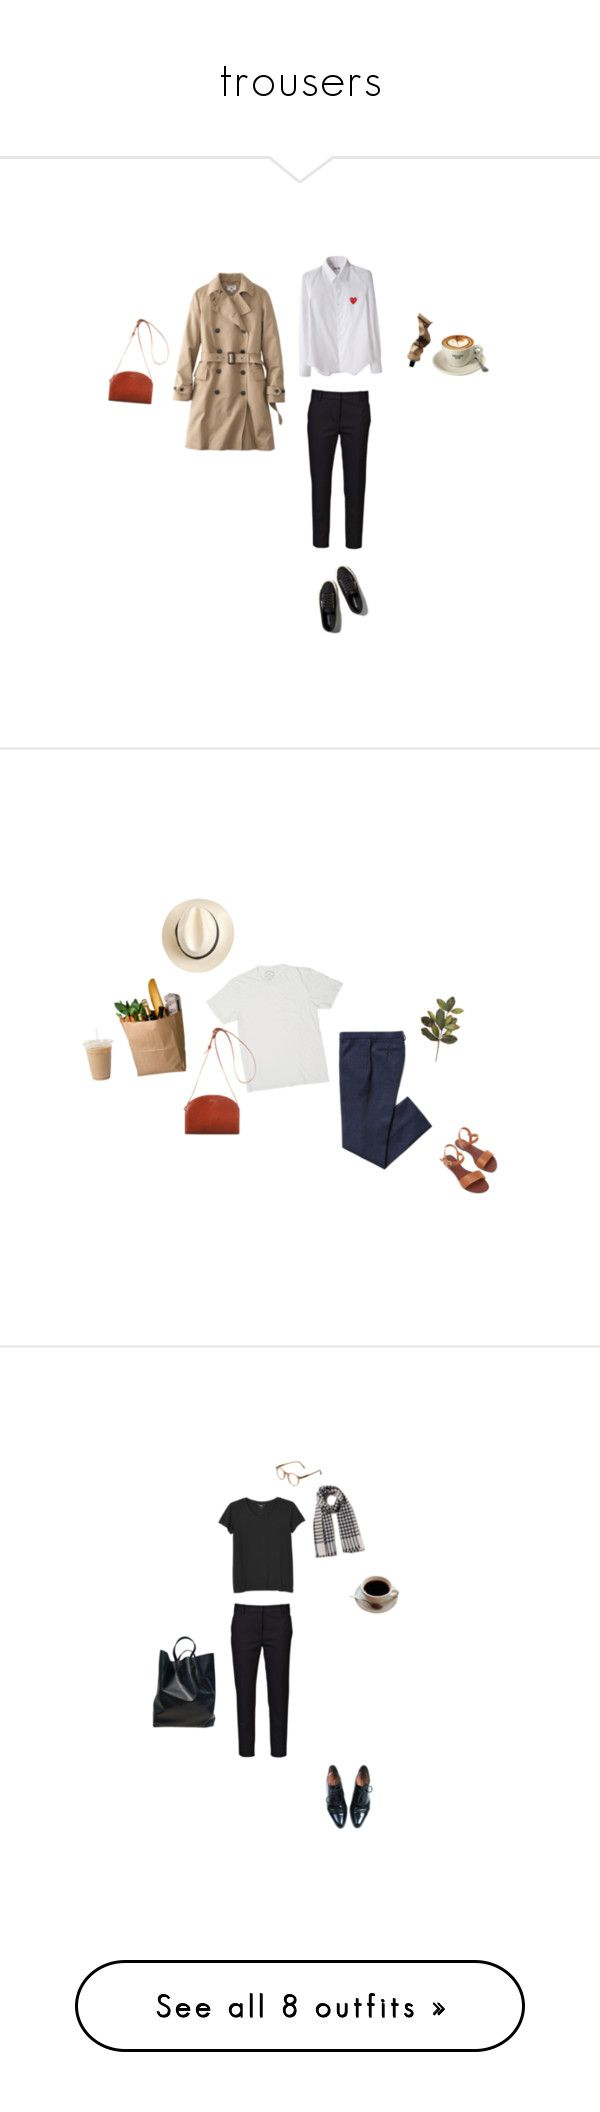 """""""trousers"""" by youthcult ❤ liked on Polyvore featuring Comme des Garçons, 3.1 Phillip Lim, Uniqlo, Abercrombie & Fitch, A.P.C., Aesop, J.Crew, beauty, Marc Jacobs and Burberry"""